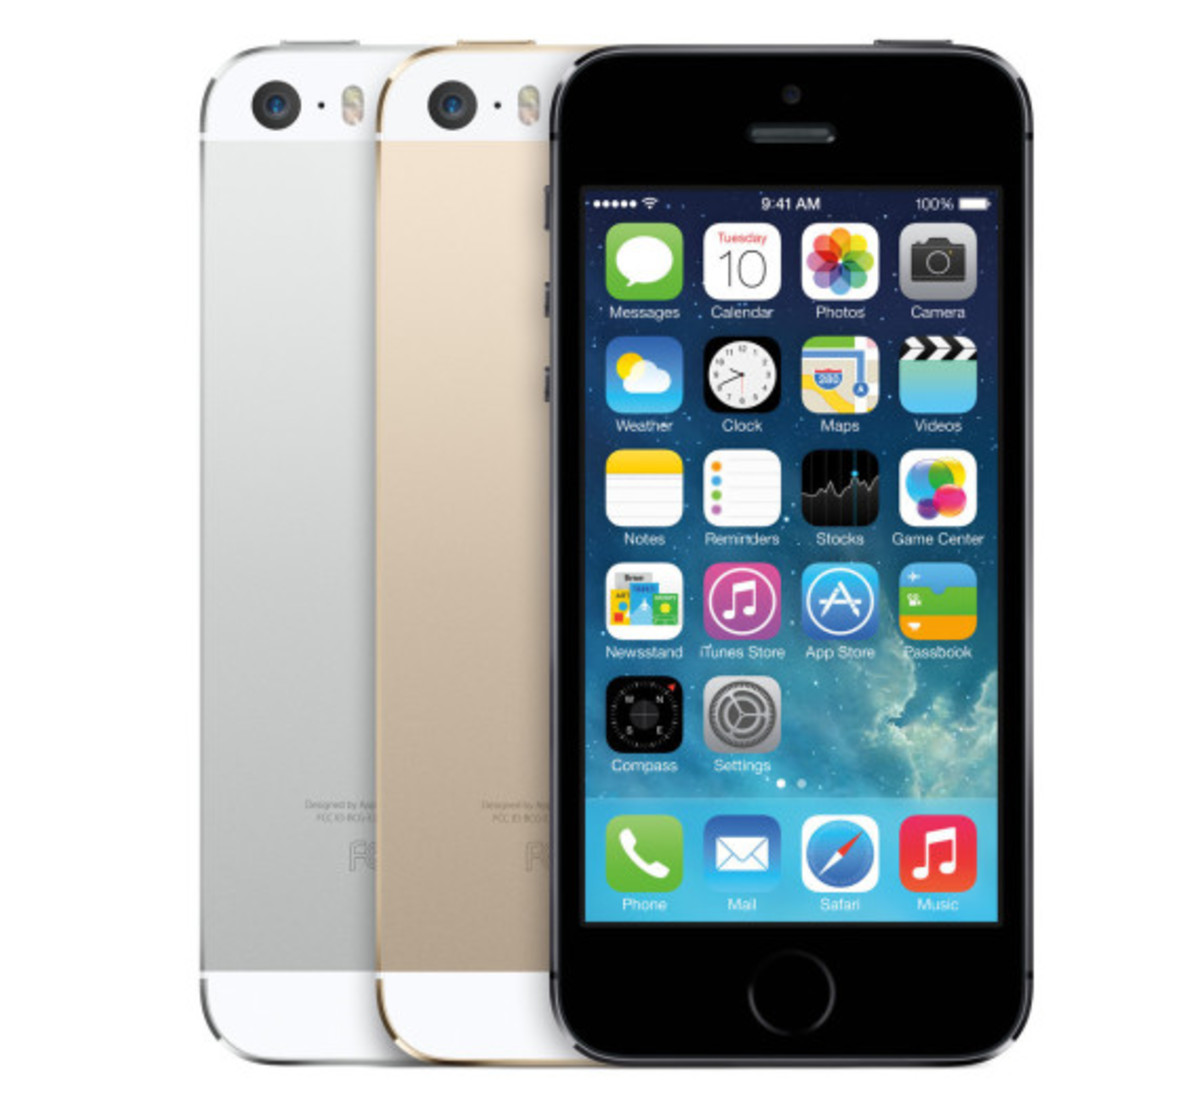 apple-iphone-5s-five-new-features-02